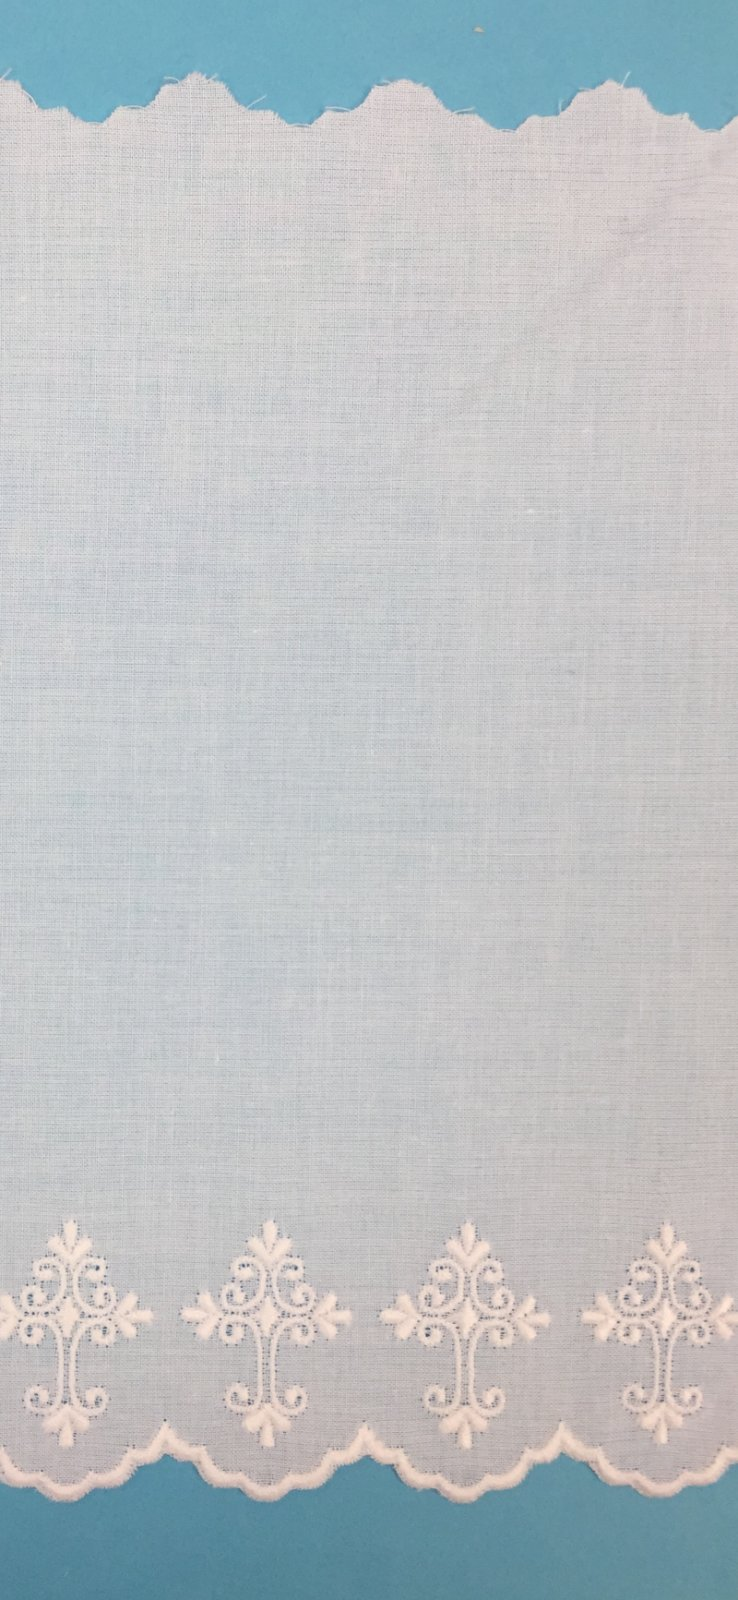 Swiss Embroidered Cross Edging 7.25 Inch White 100146W-14